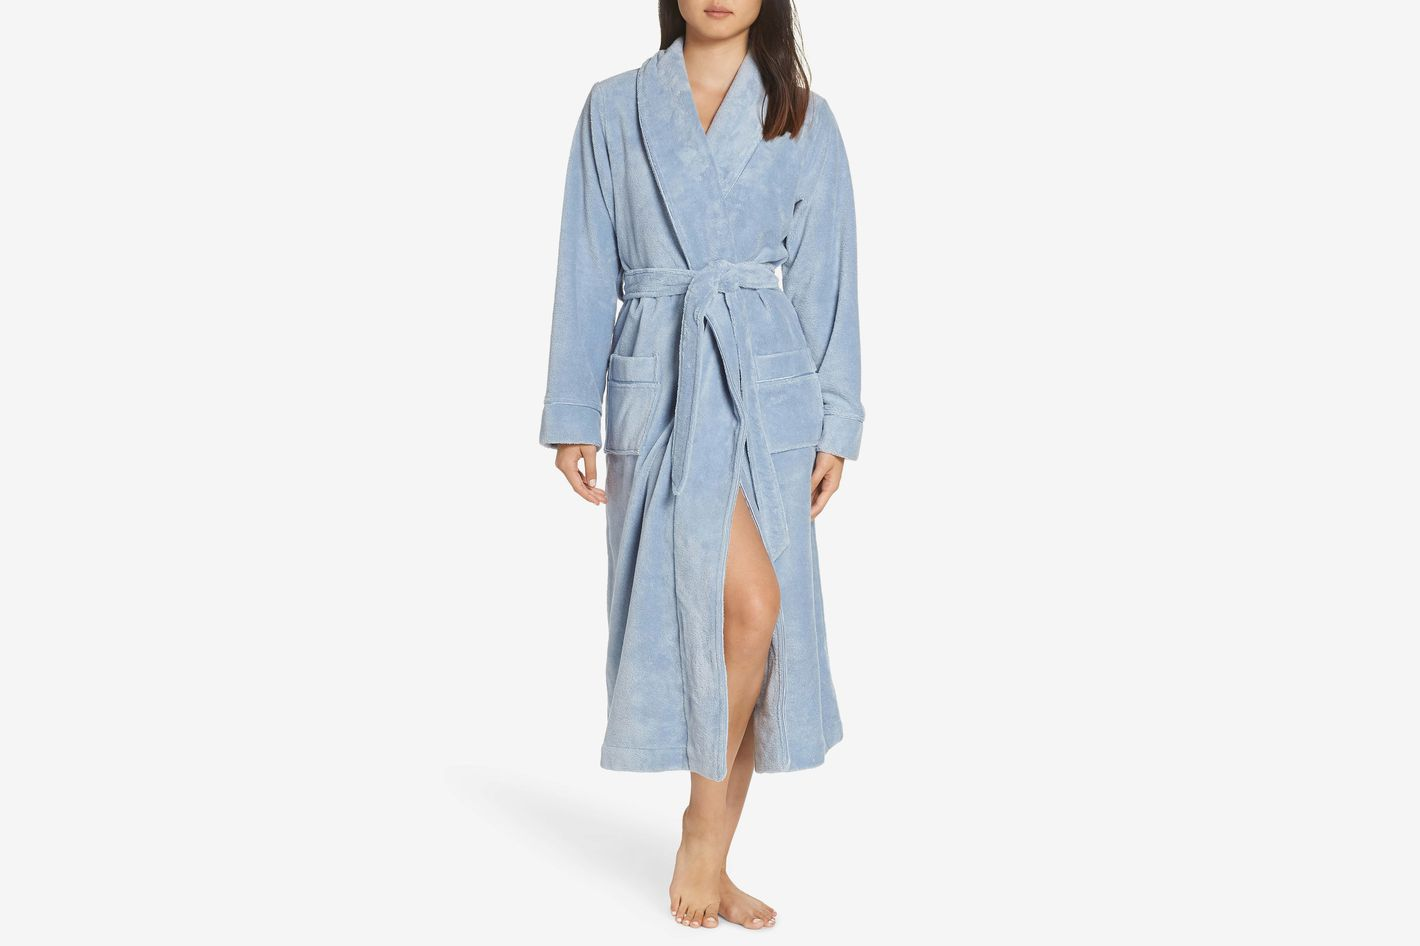 efc26c5a52 15 Best Bathrobes for Women 2018